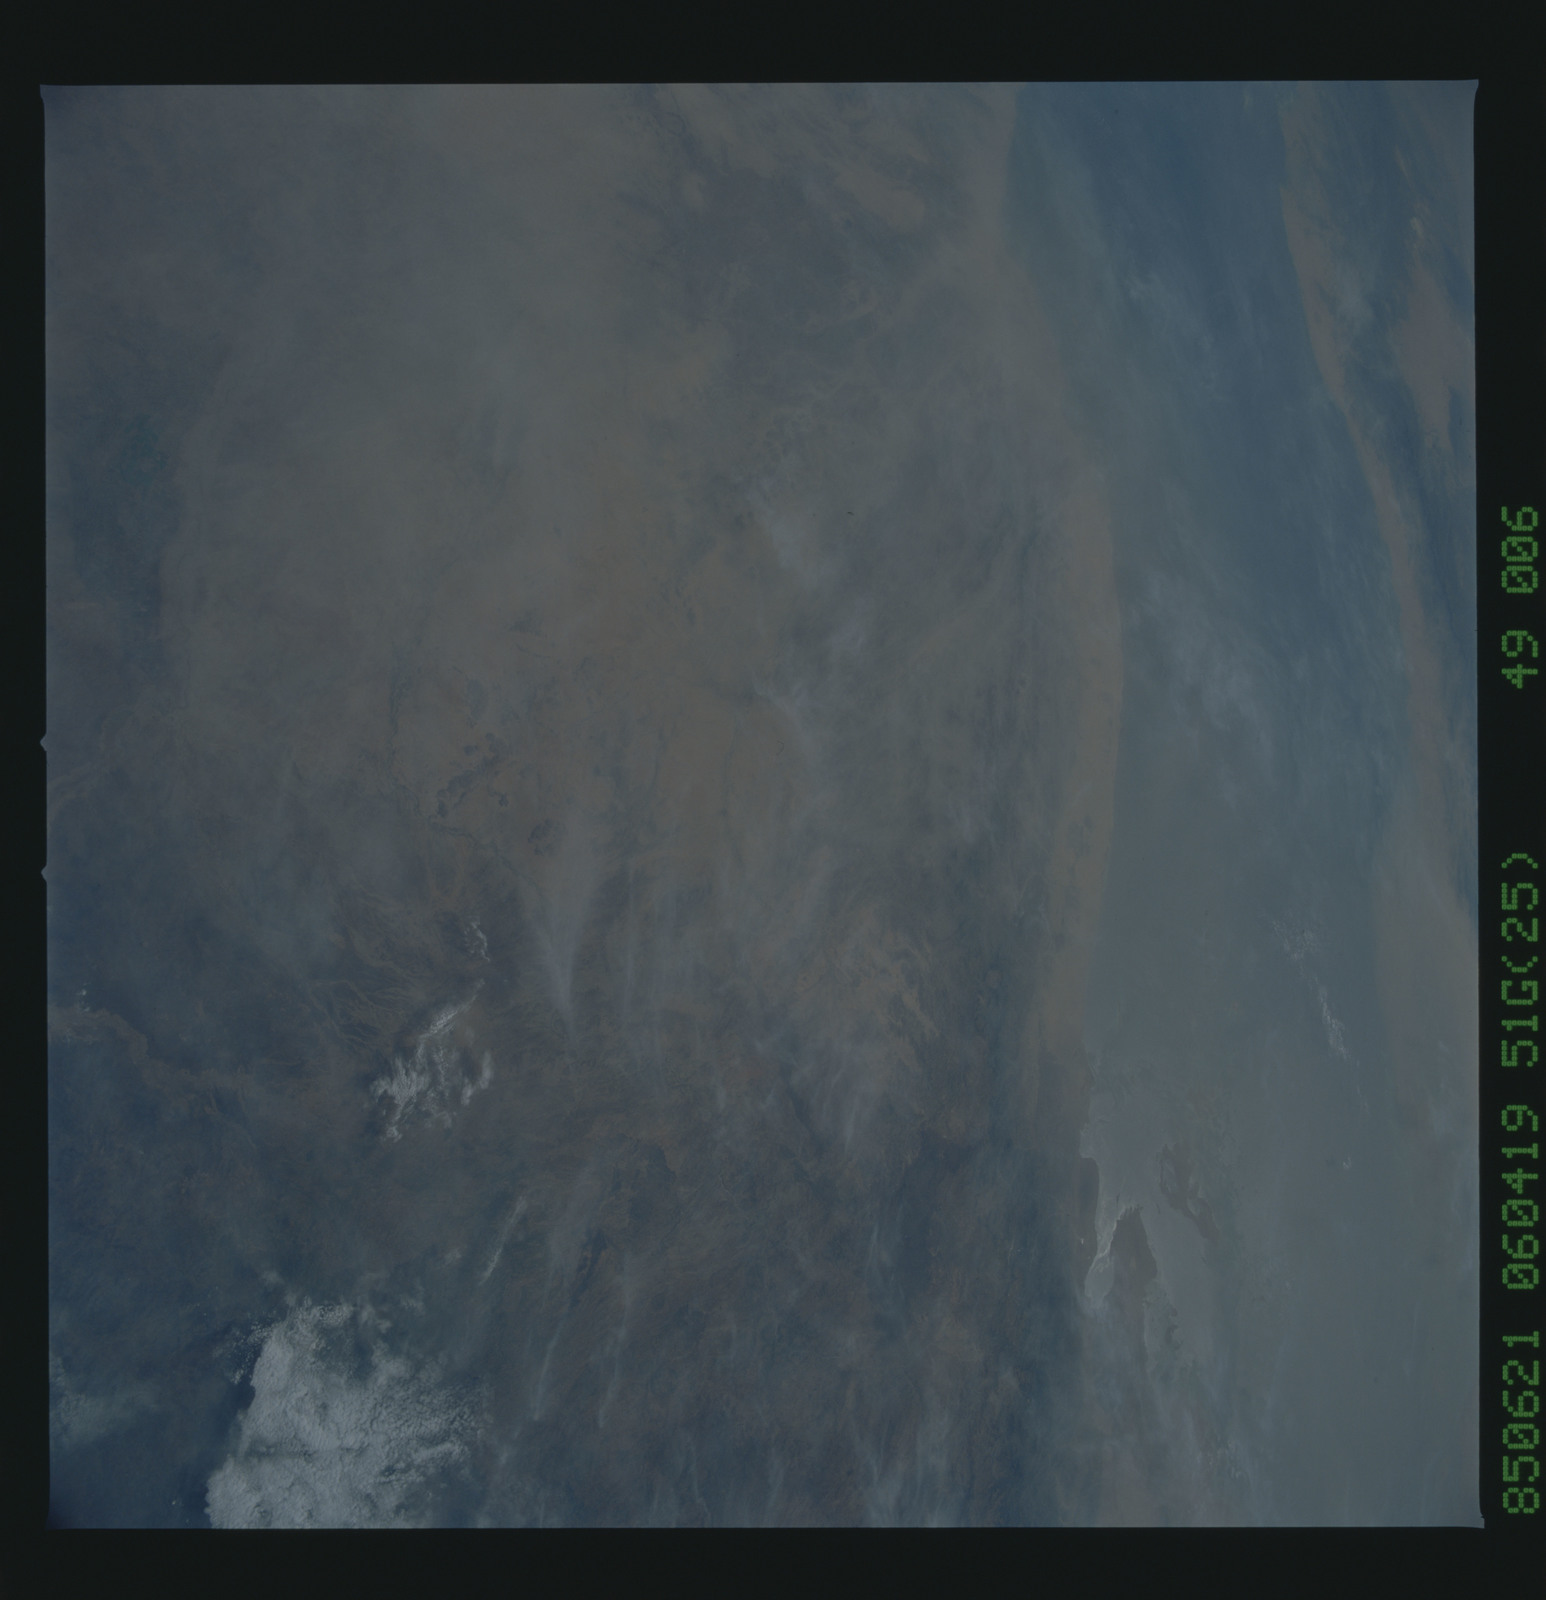 51G-49-006 - STS-51G - STS-51G earth observations